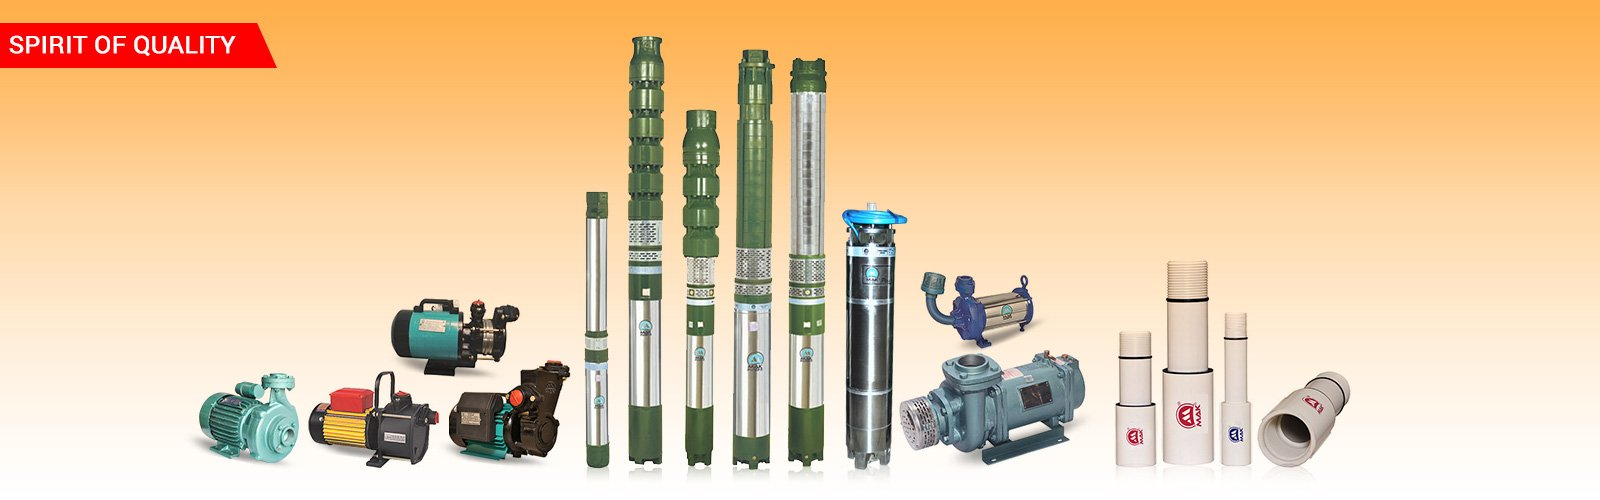 Submersible Pump Sets Manufacturer and Supplier